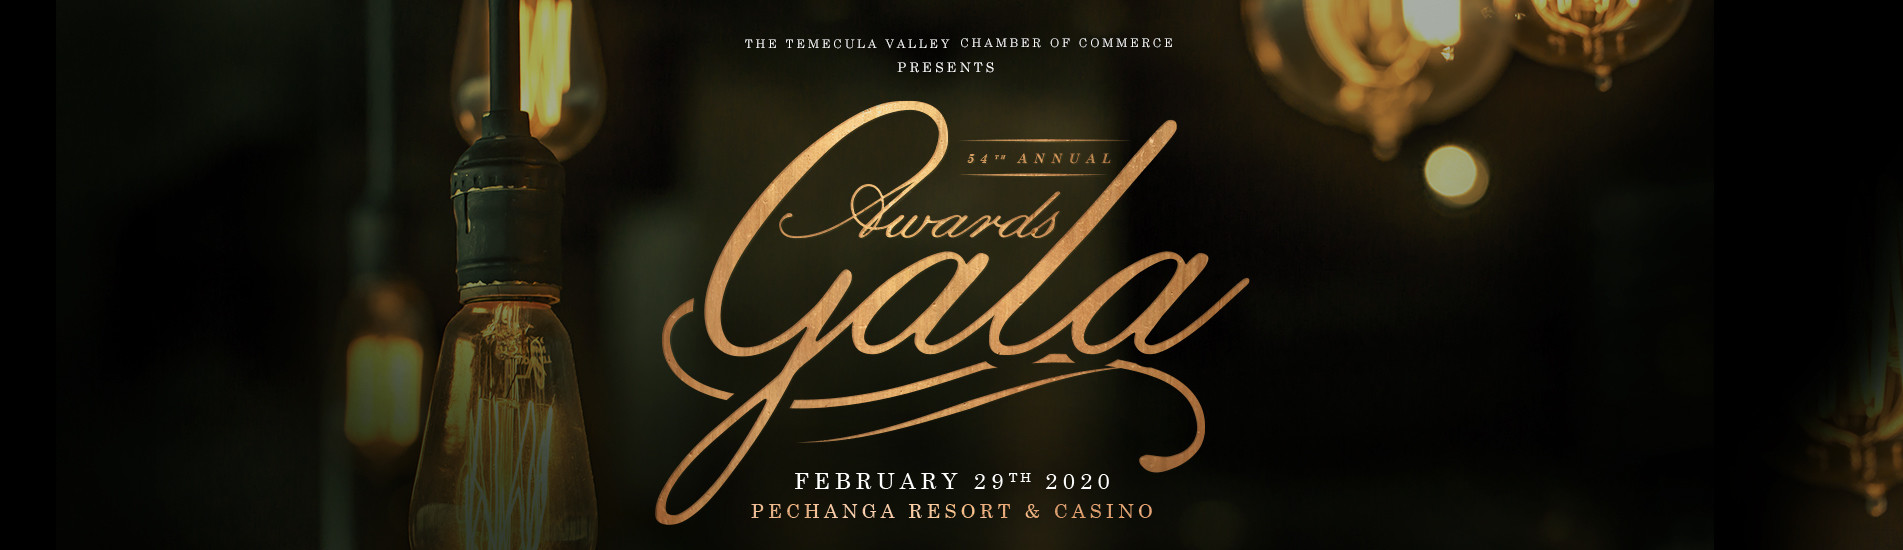 54th Annual Awards Gala